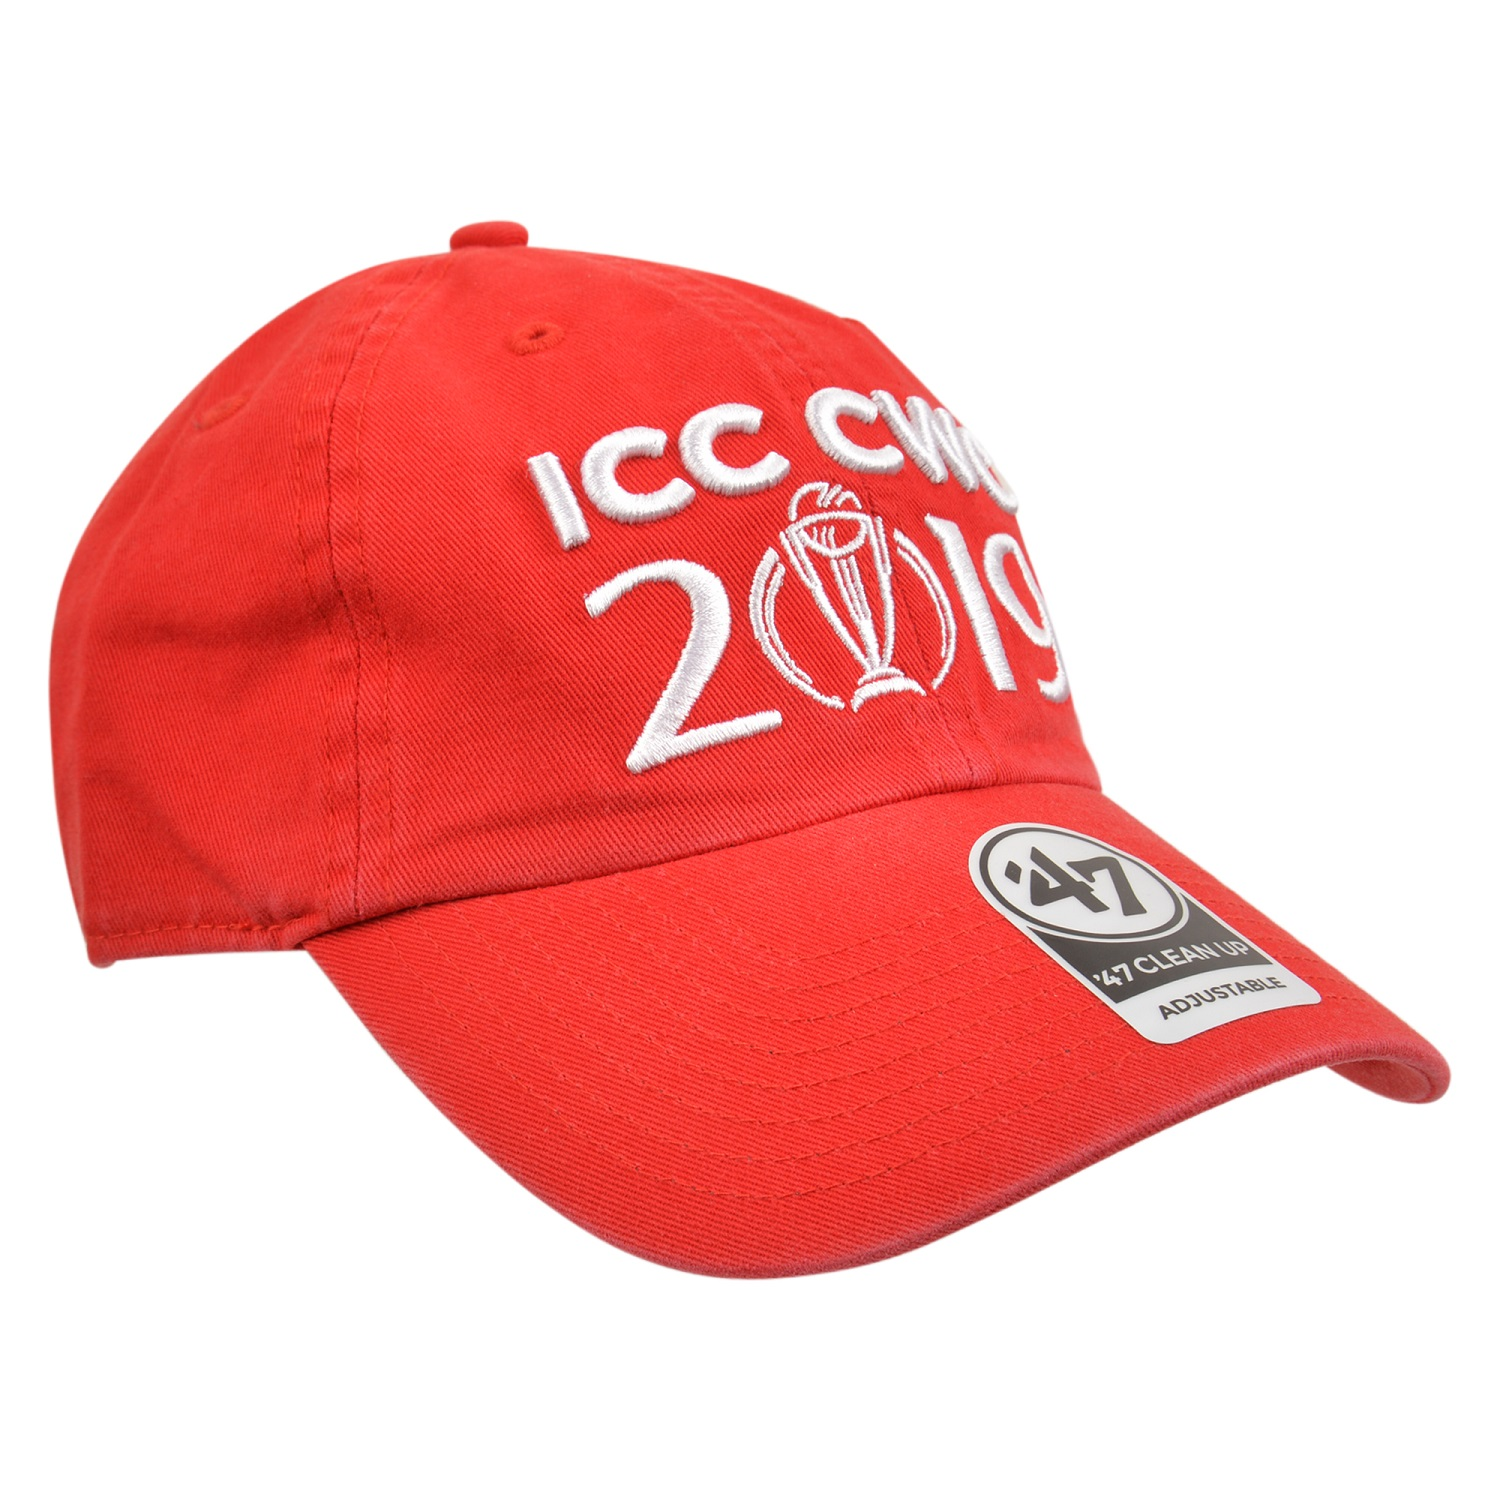 cwc19 logo 47 clean up red white cap